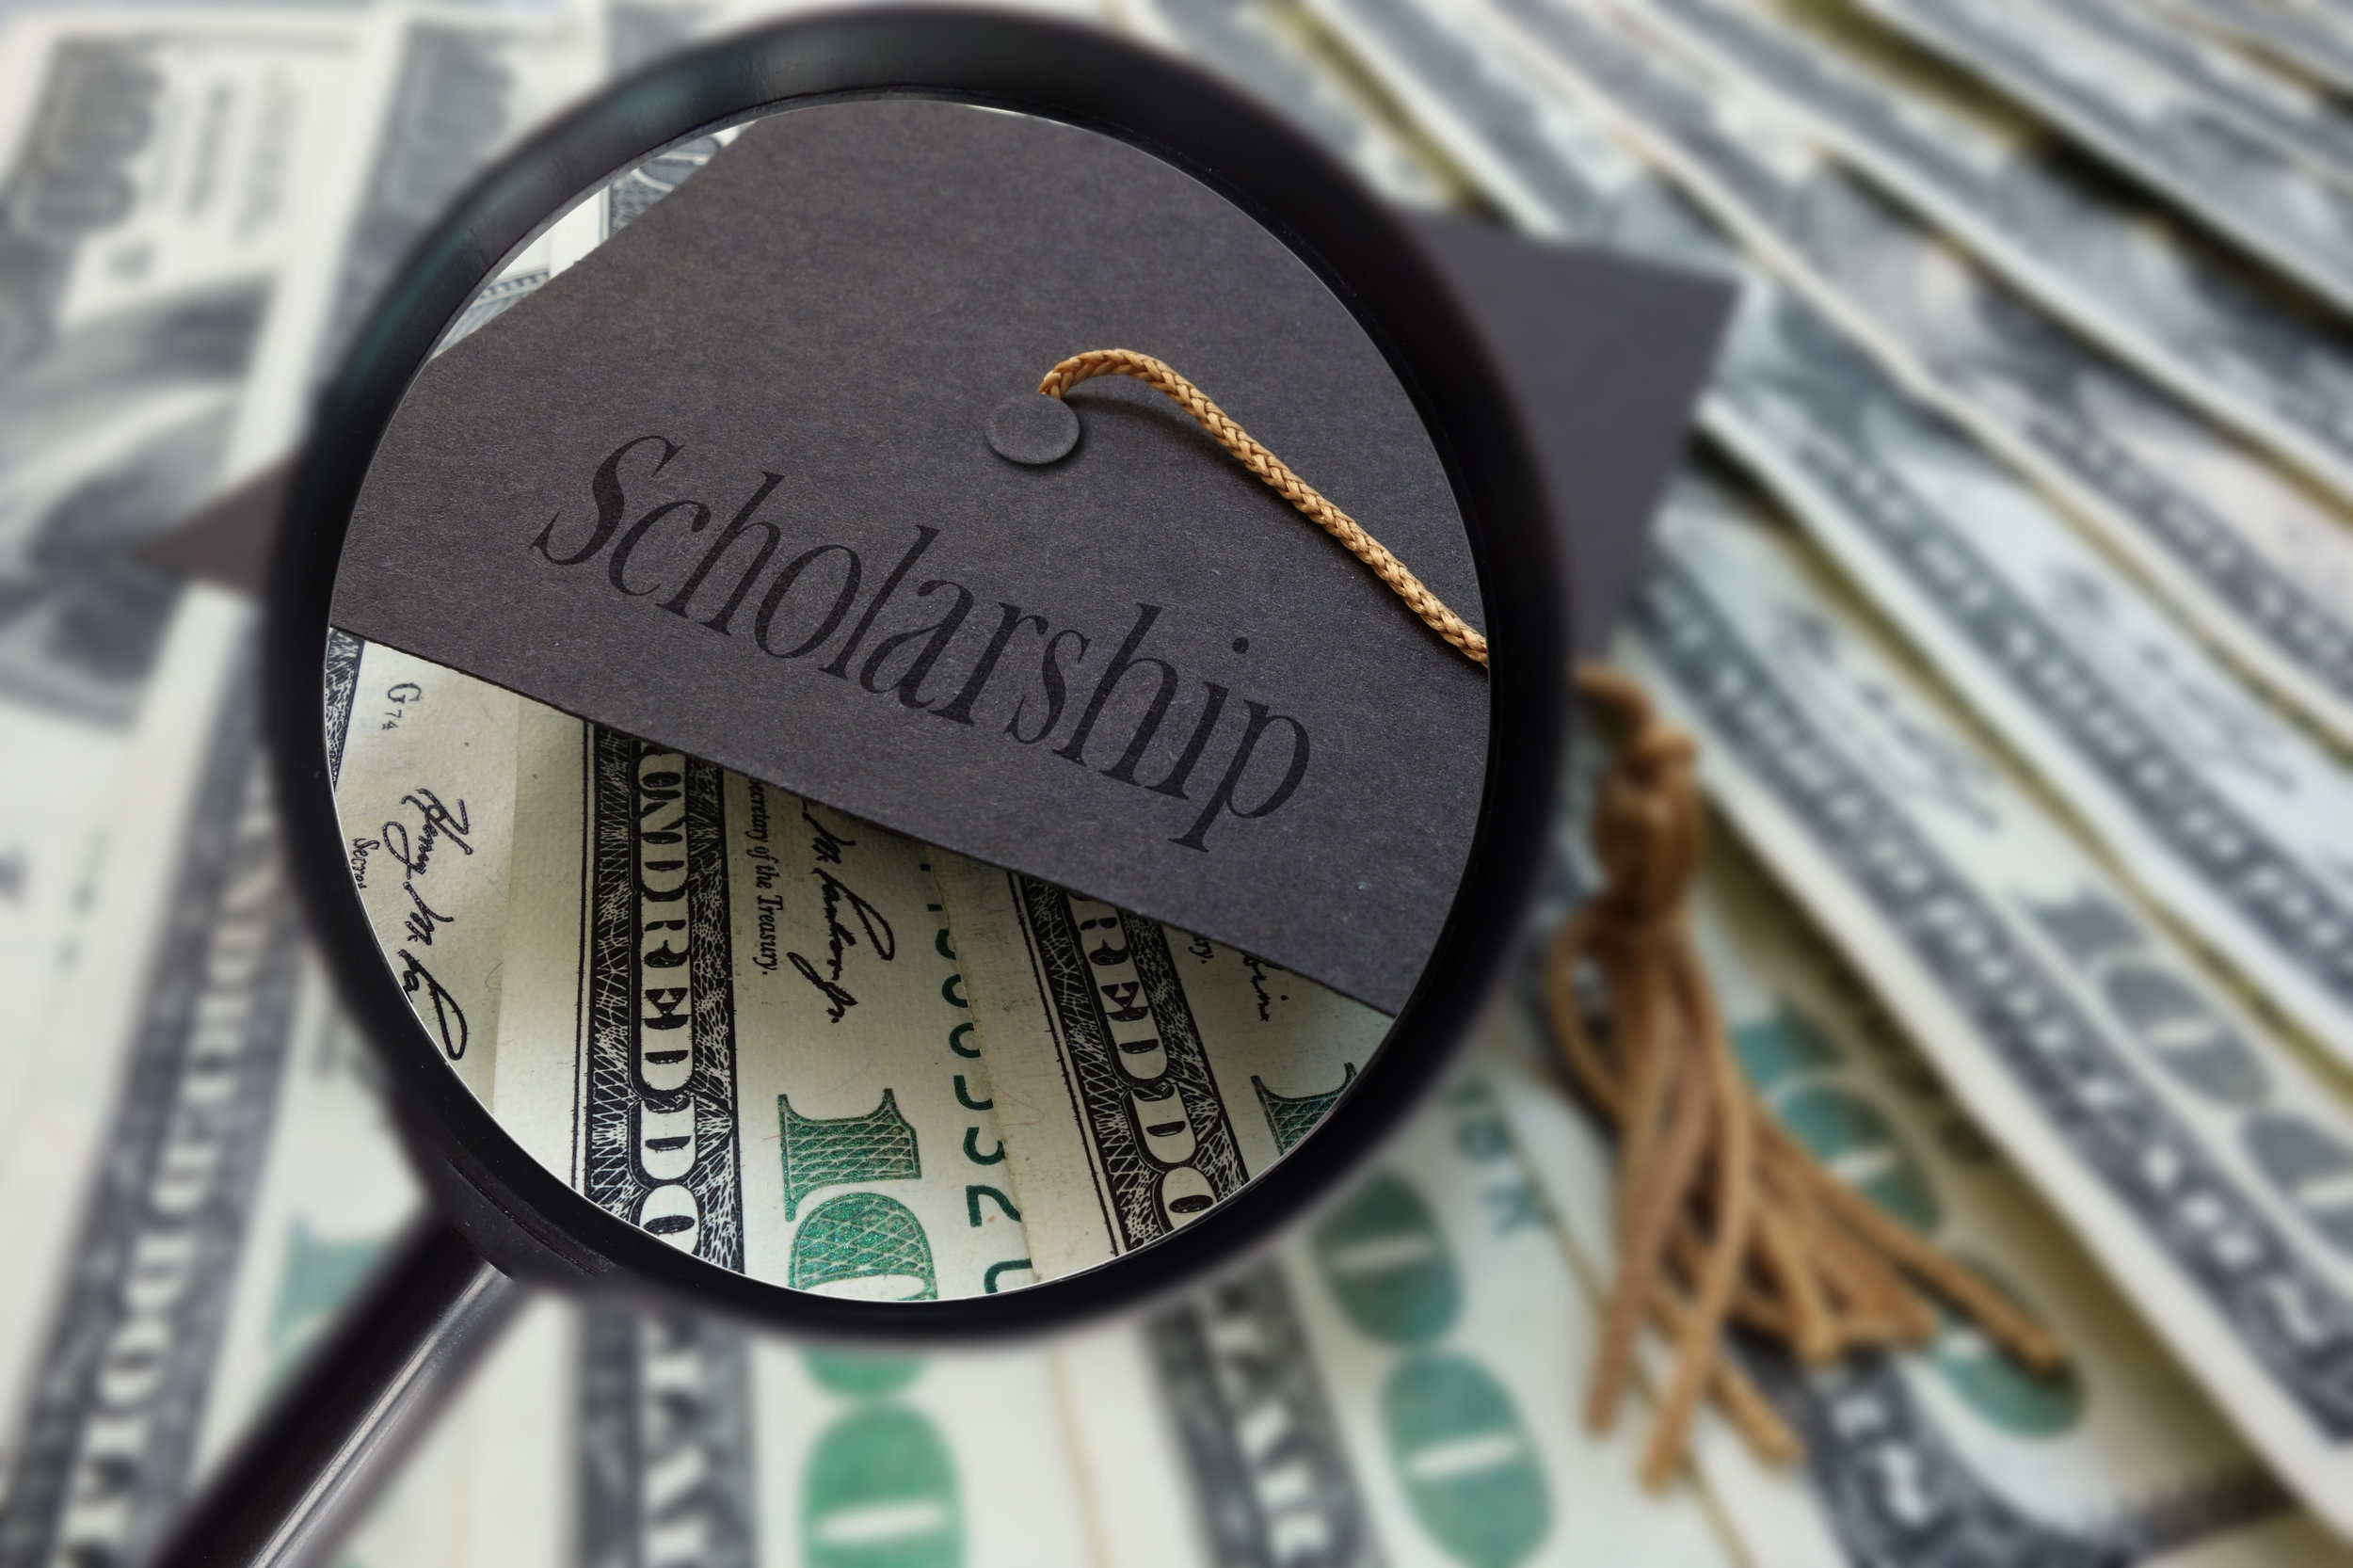 Shemmassian Academic Consulting College Scholarship Search.jpg